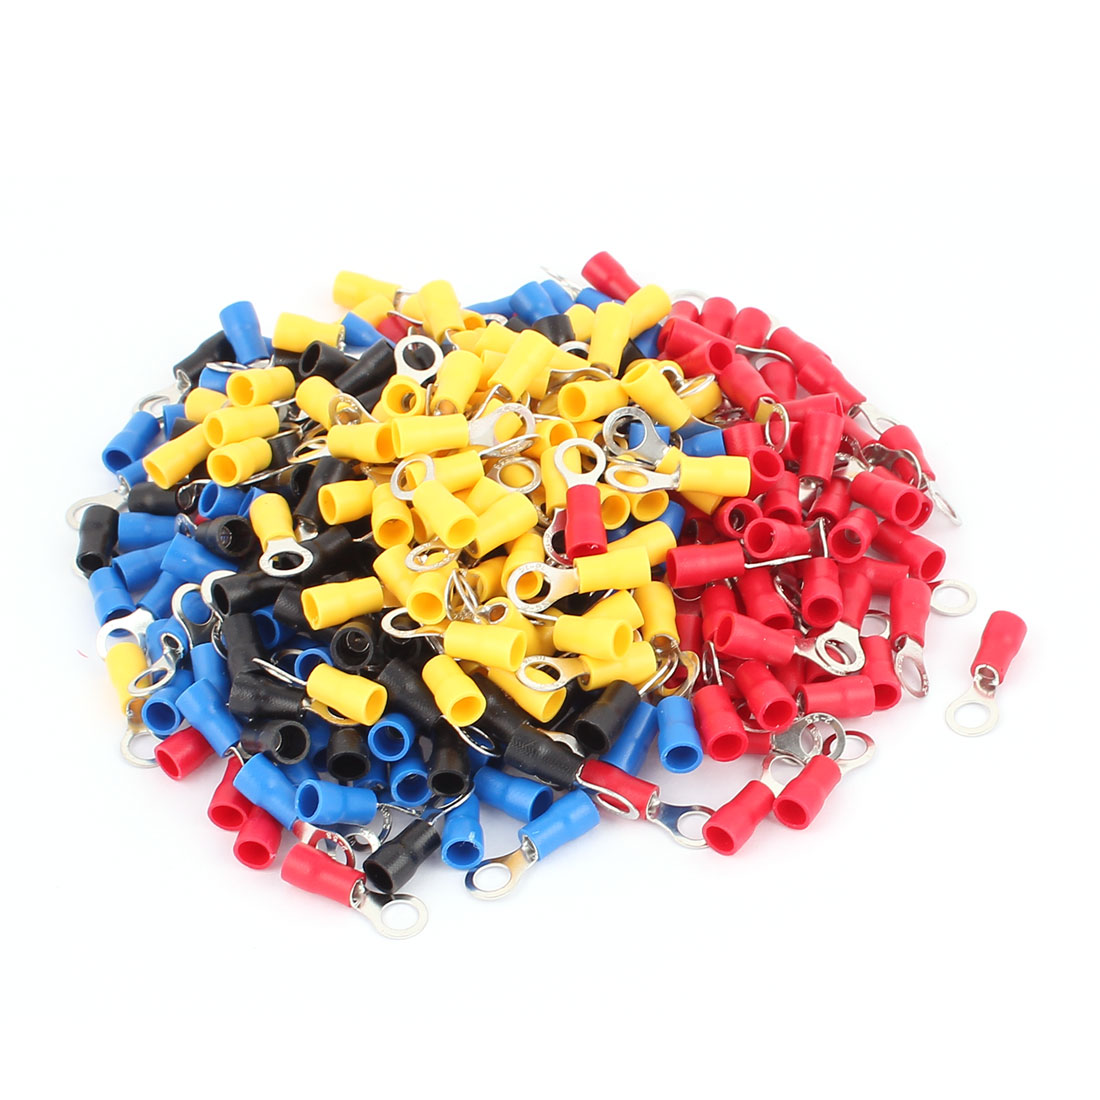 320Pcs RV2-5S AWG 16-14 Red Blue Yellow Blackv PVC Sleeve Pre Insulated Ring Terminals Connector